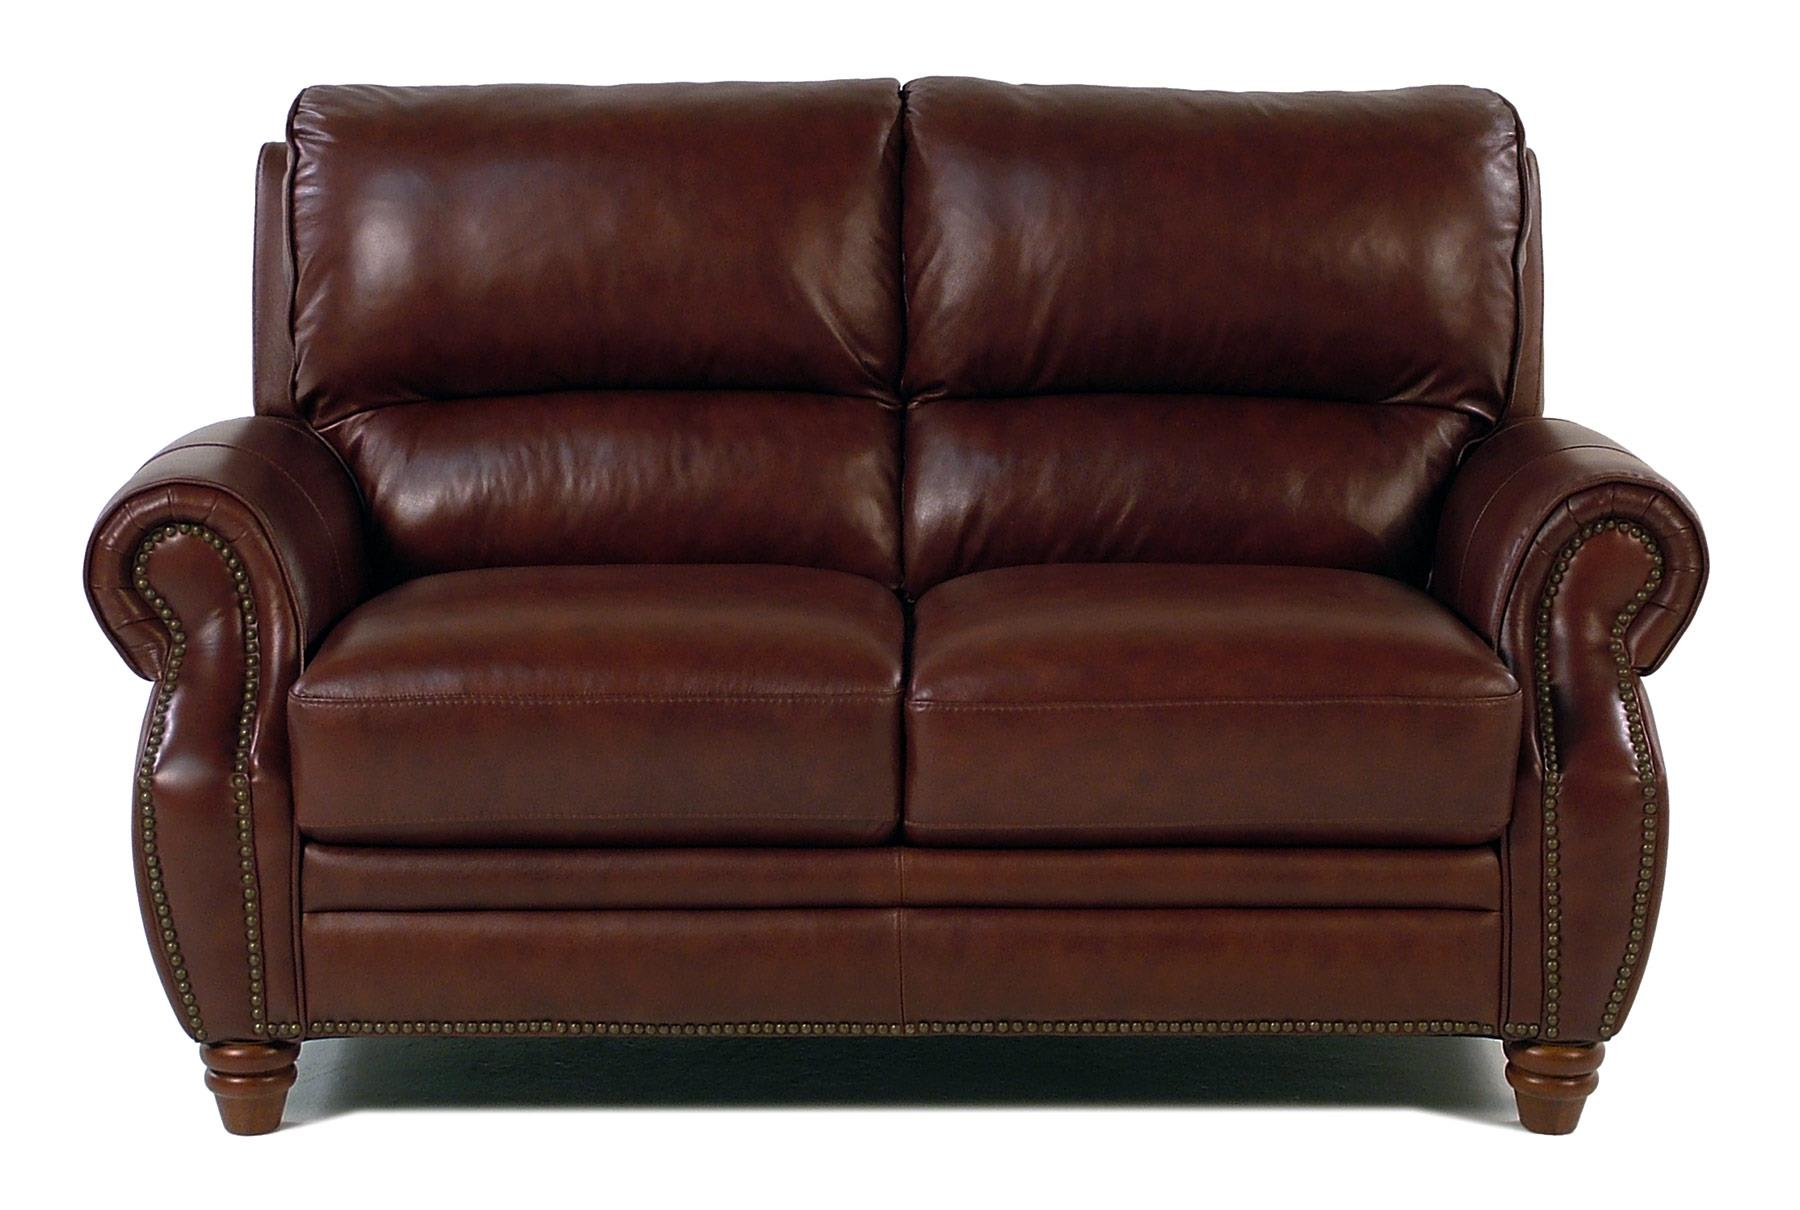 Giovani Barrister Traditional Leather Loveseat w/ Nailhead Tri - Item Number: 10441NH-2S